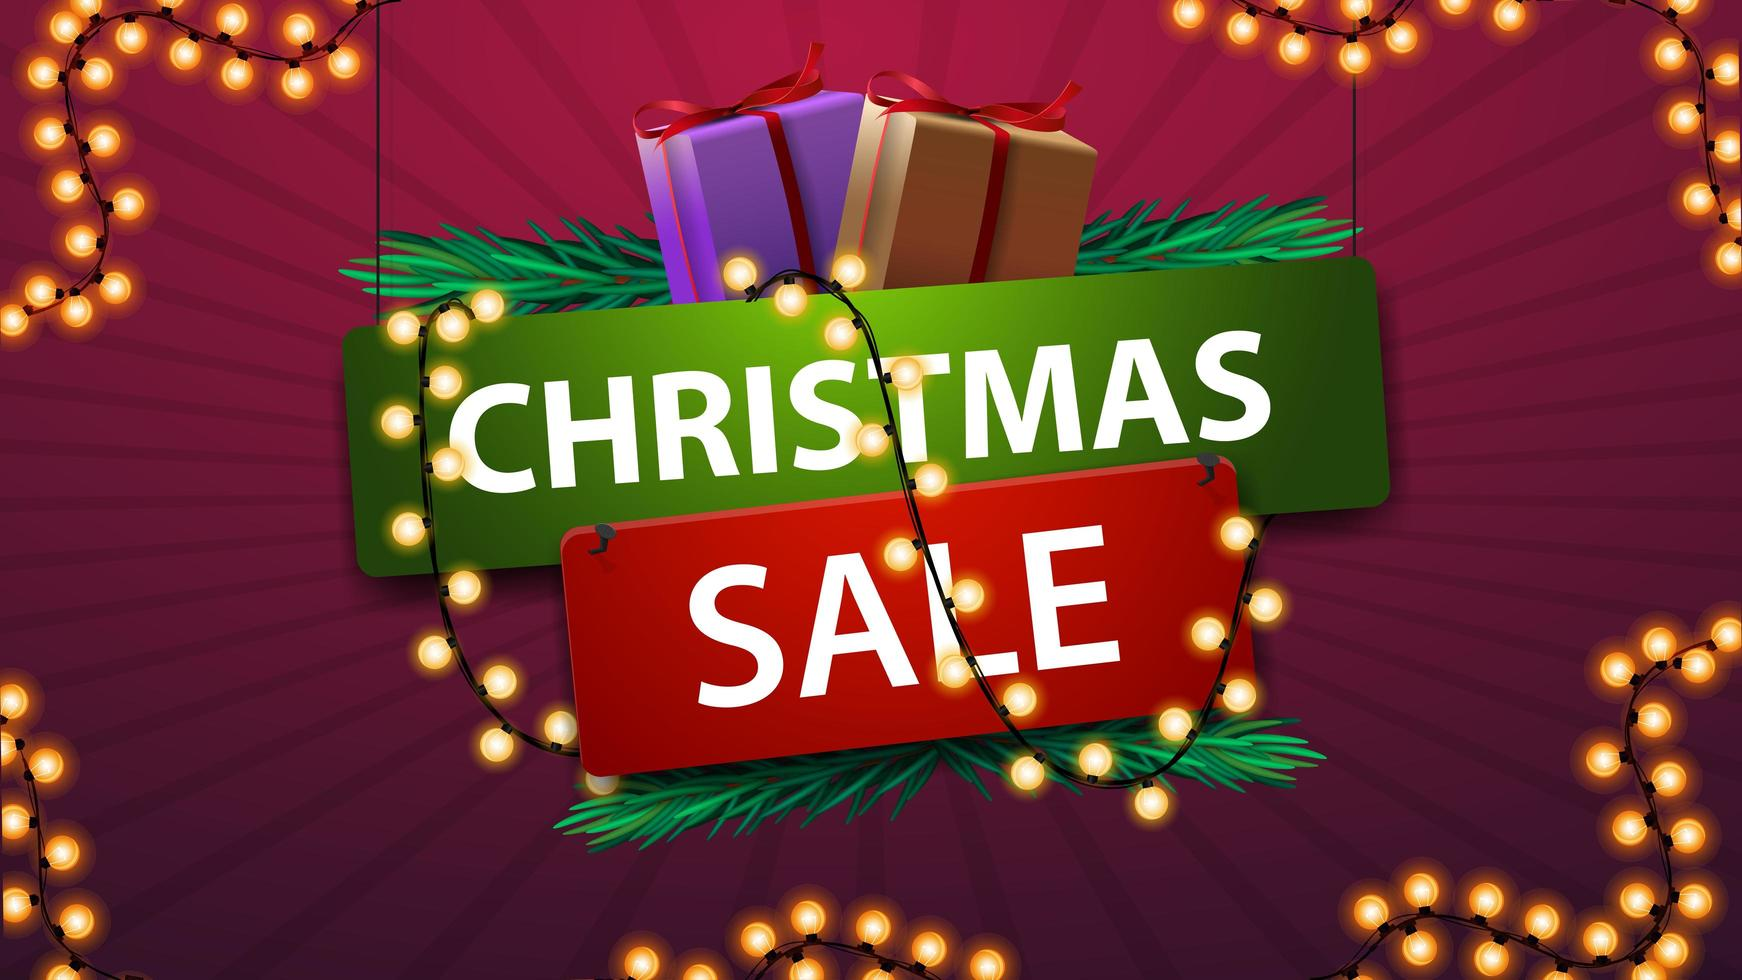 Christmas sale, banner in cartoon style with gifts and garland. vector